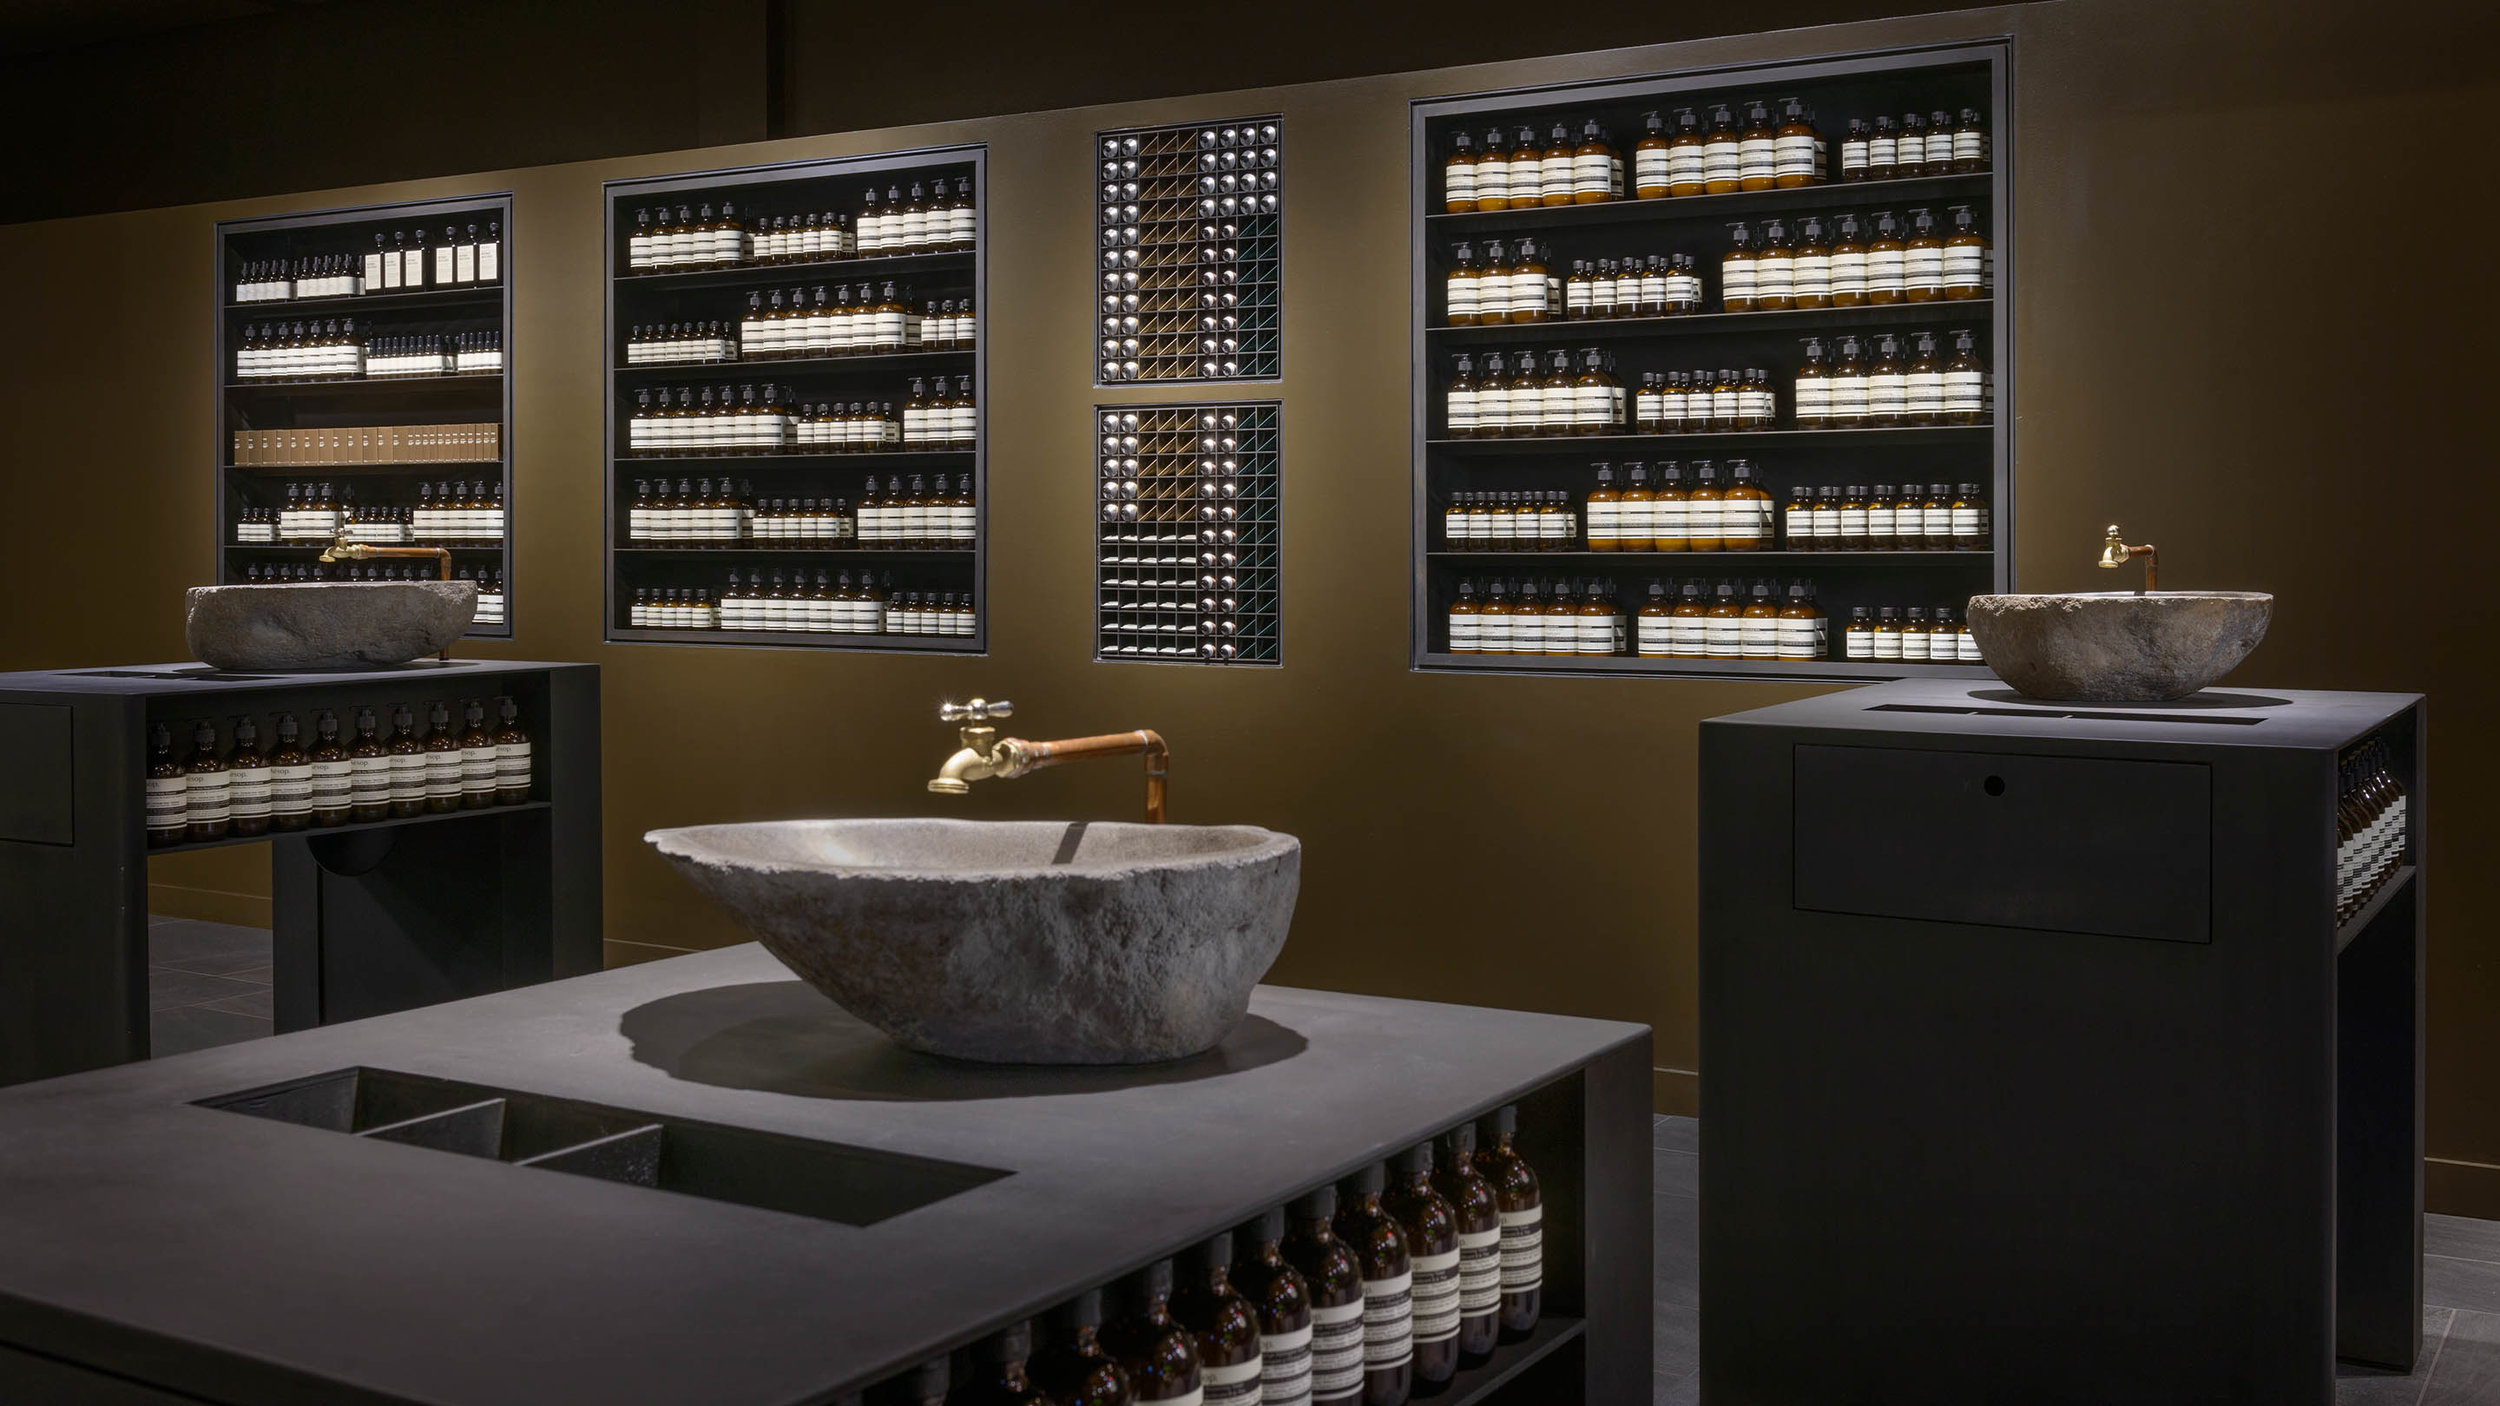 The soul of skincare brand Aesop is expressed in the beautiful designs of their stores. Their stores, much like their products, reflect meticulous attention to detail, with efficacy and sensory pleasure front of mind.